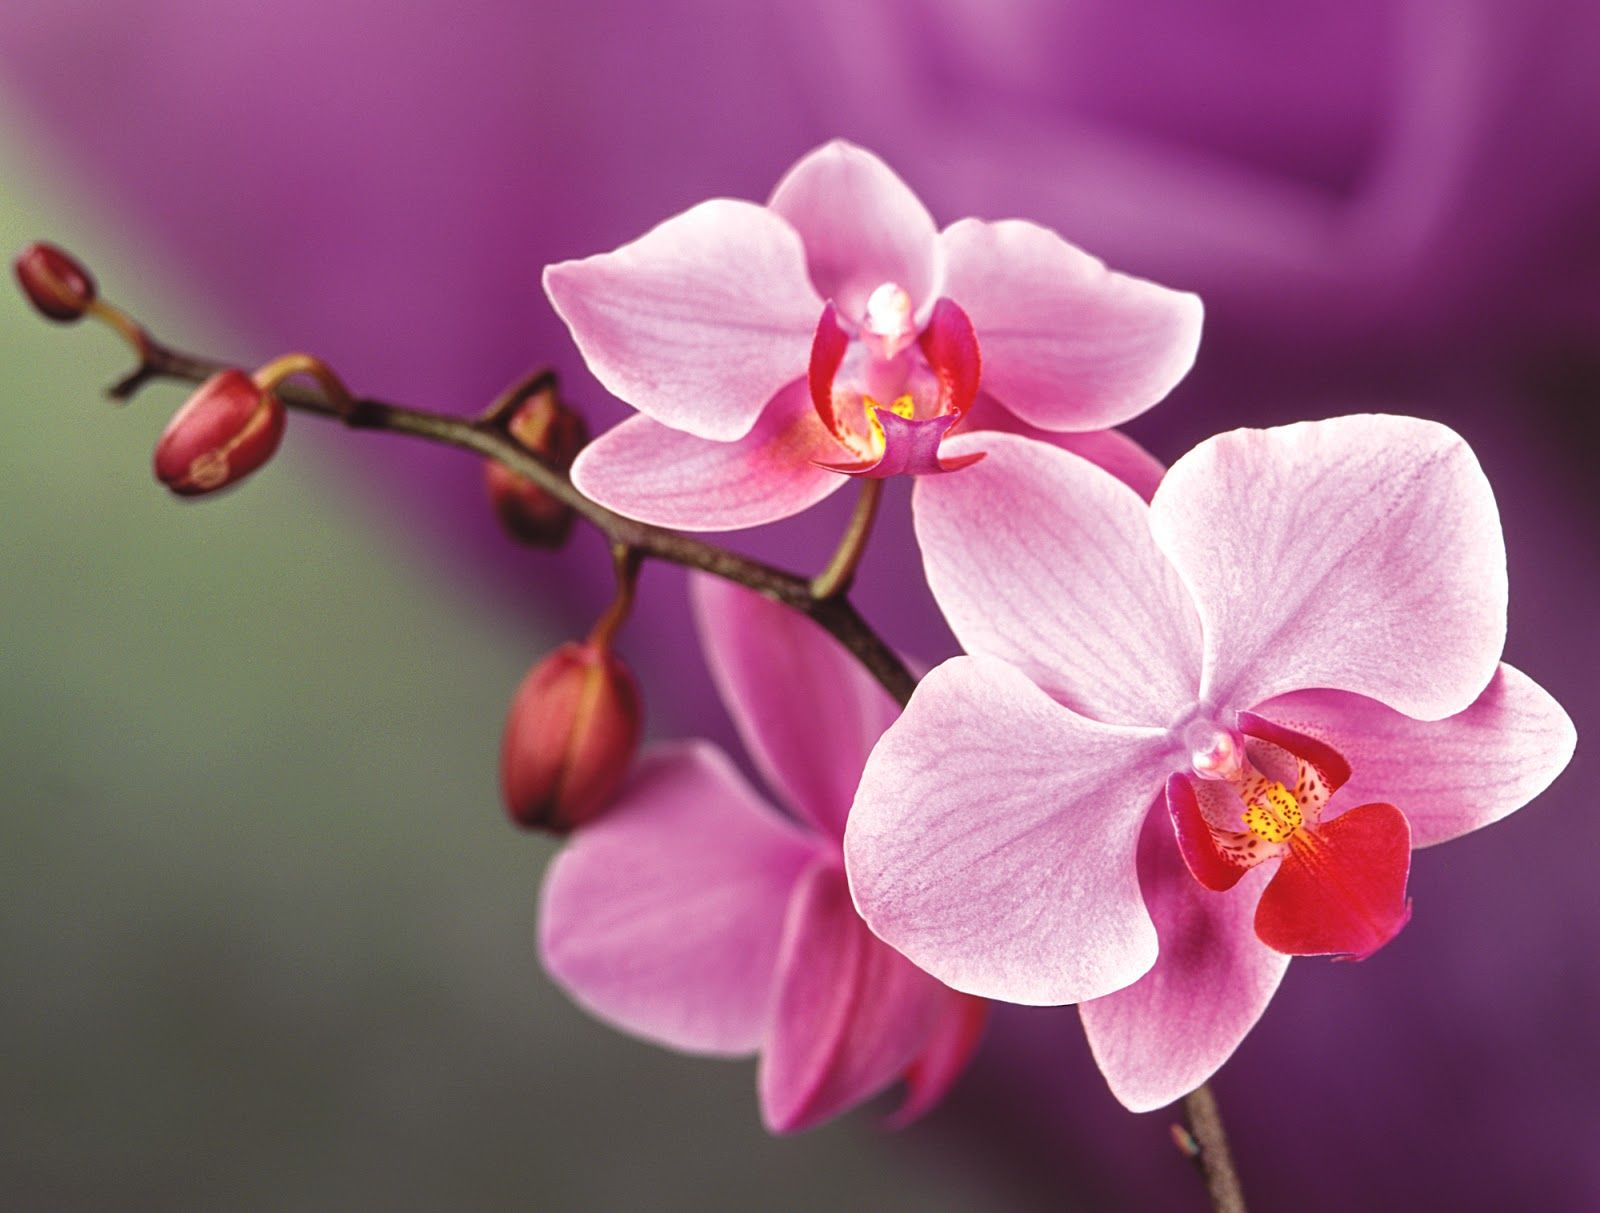 Hq Orchids Flower Photography Free Stock Image Jpg 1600 1213 Orchid Flower Orchid Wallpaper Flower Wallpaper